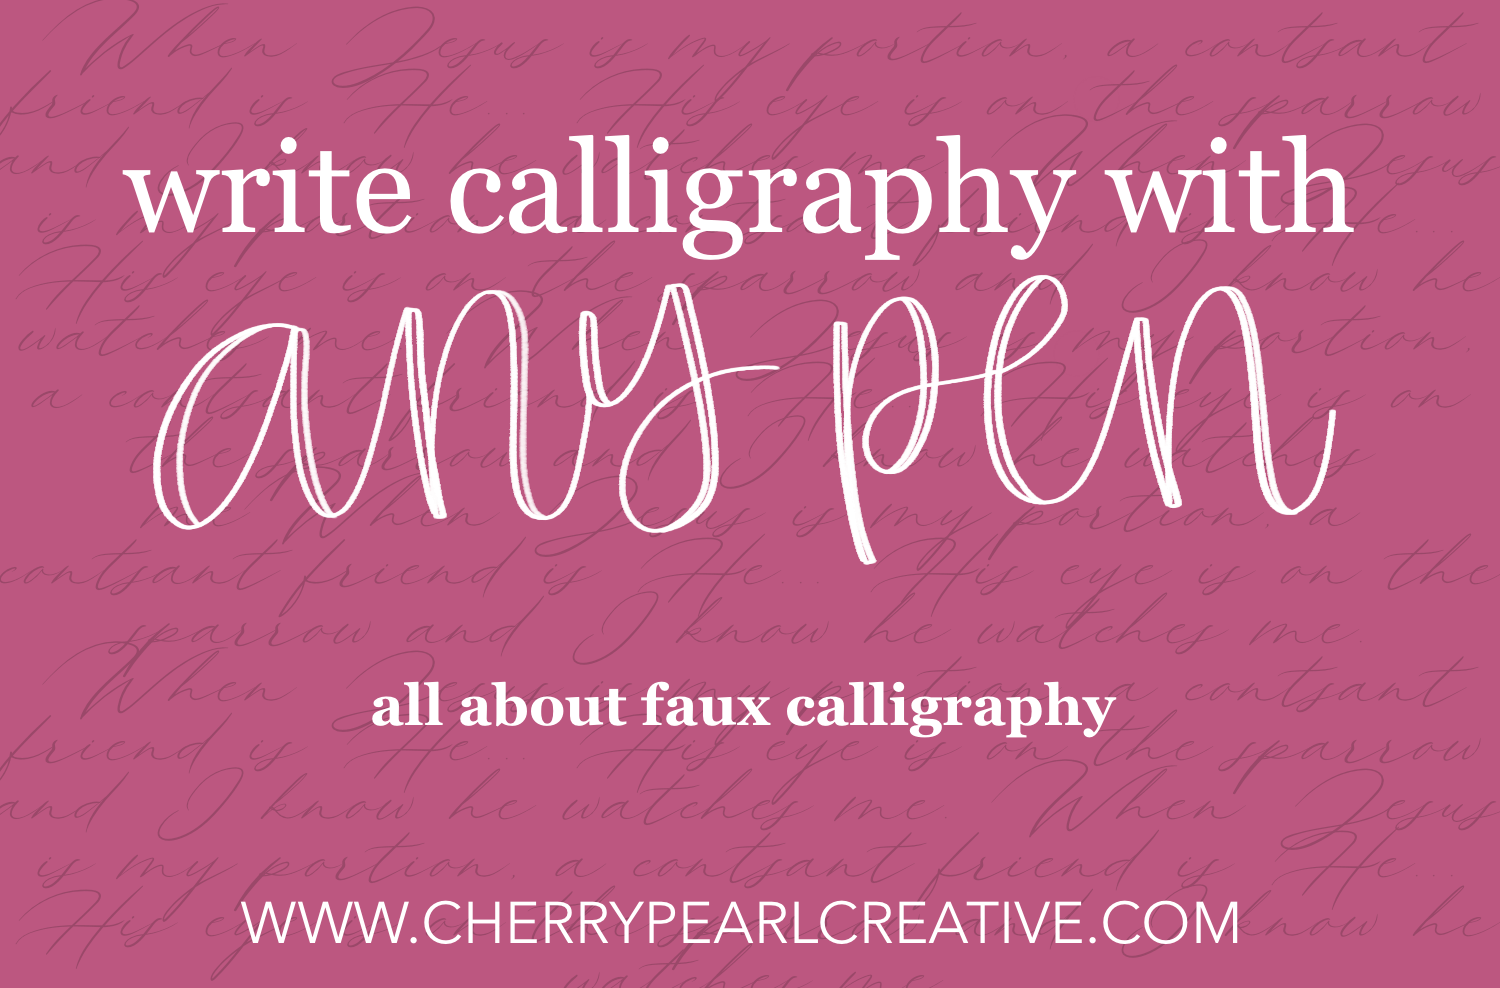 write calligraphy with any pen faux - Cherry Pearl Creative